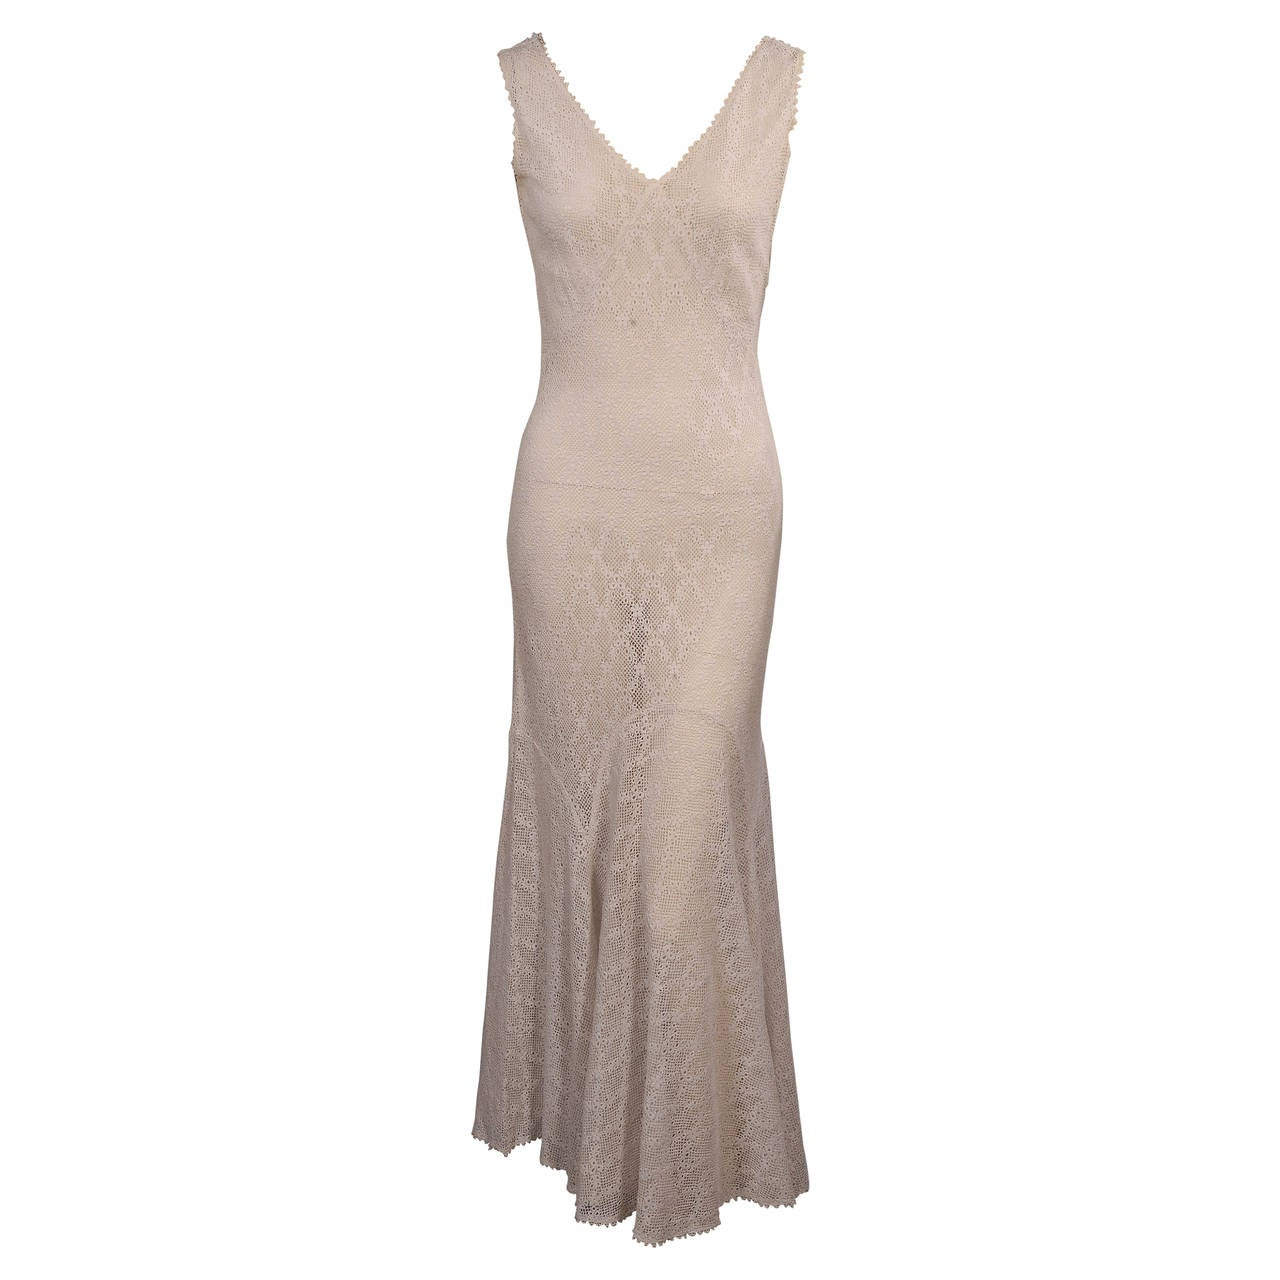 dd3e857ad0c8 1930 s Bias Cut White Lace Evening Dress at 1stdibs